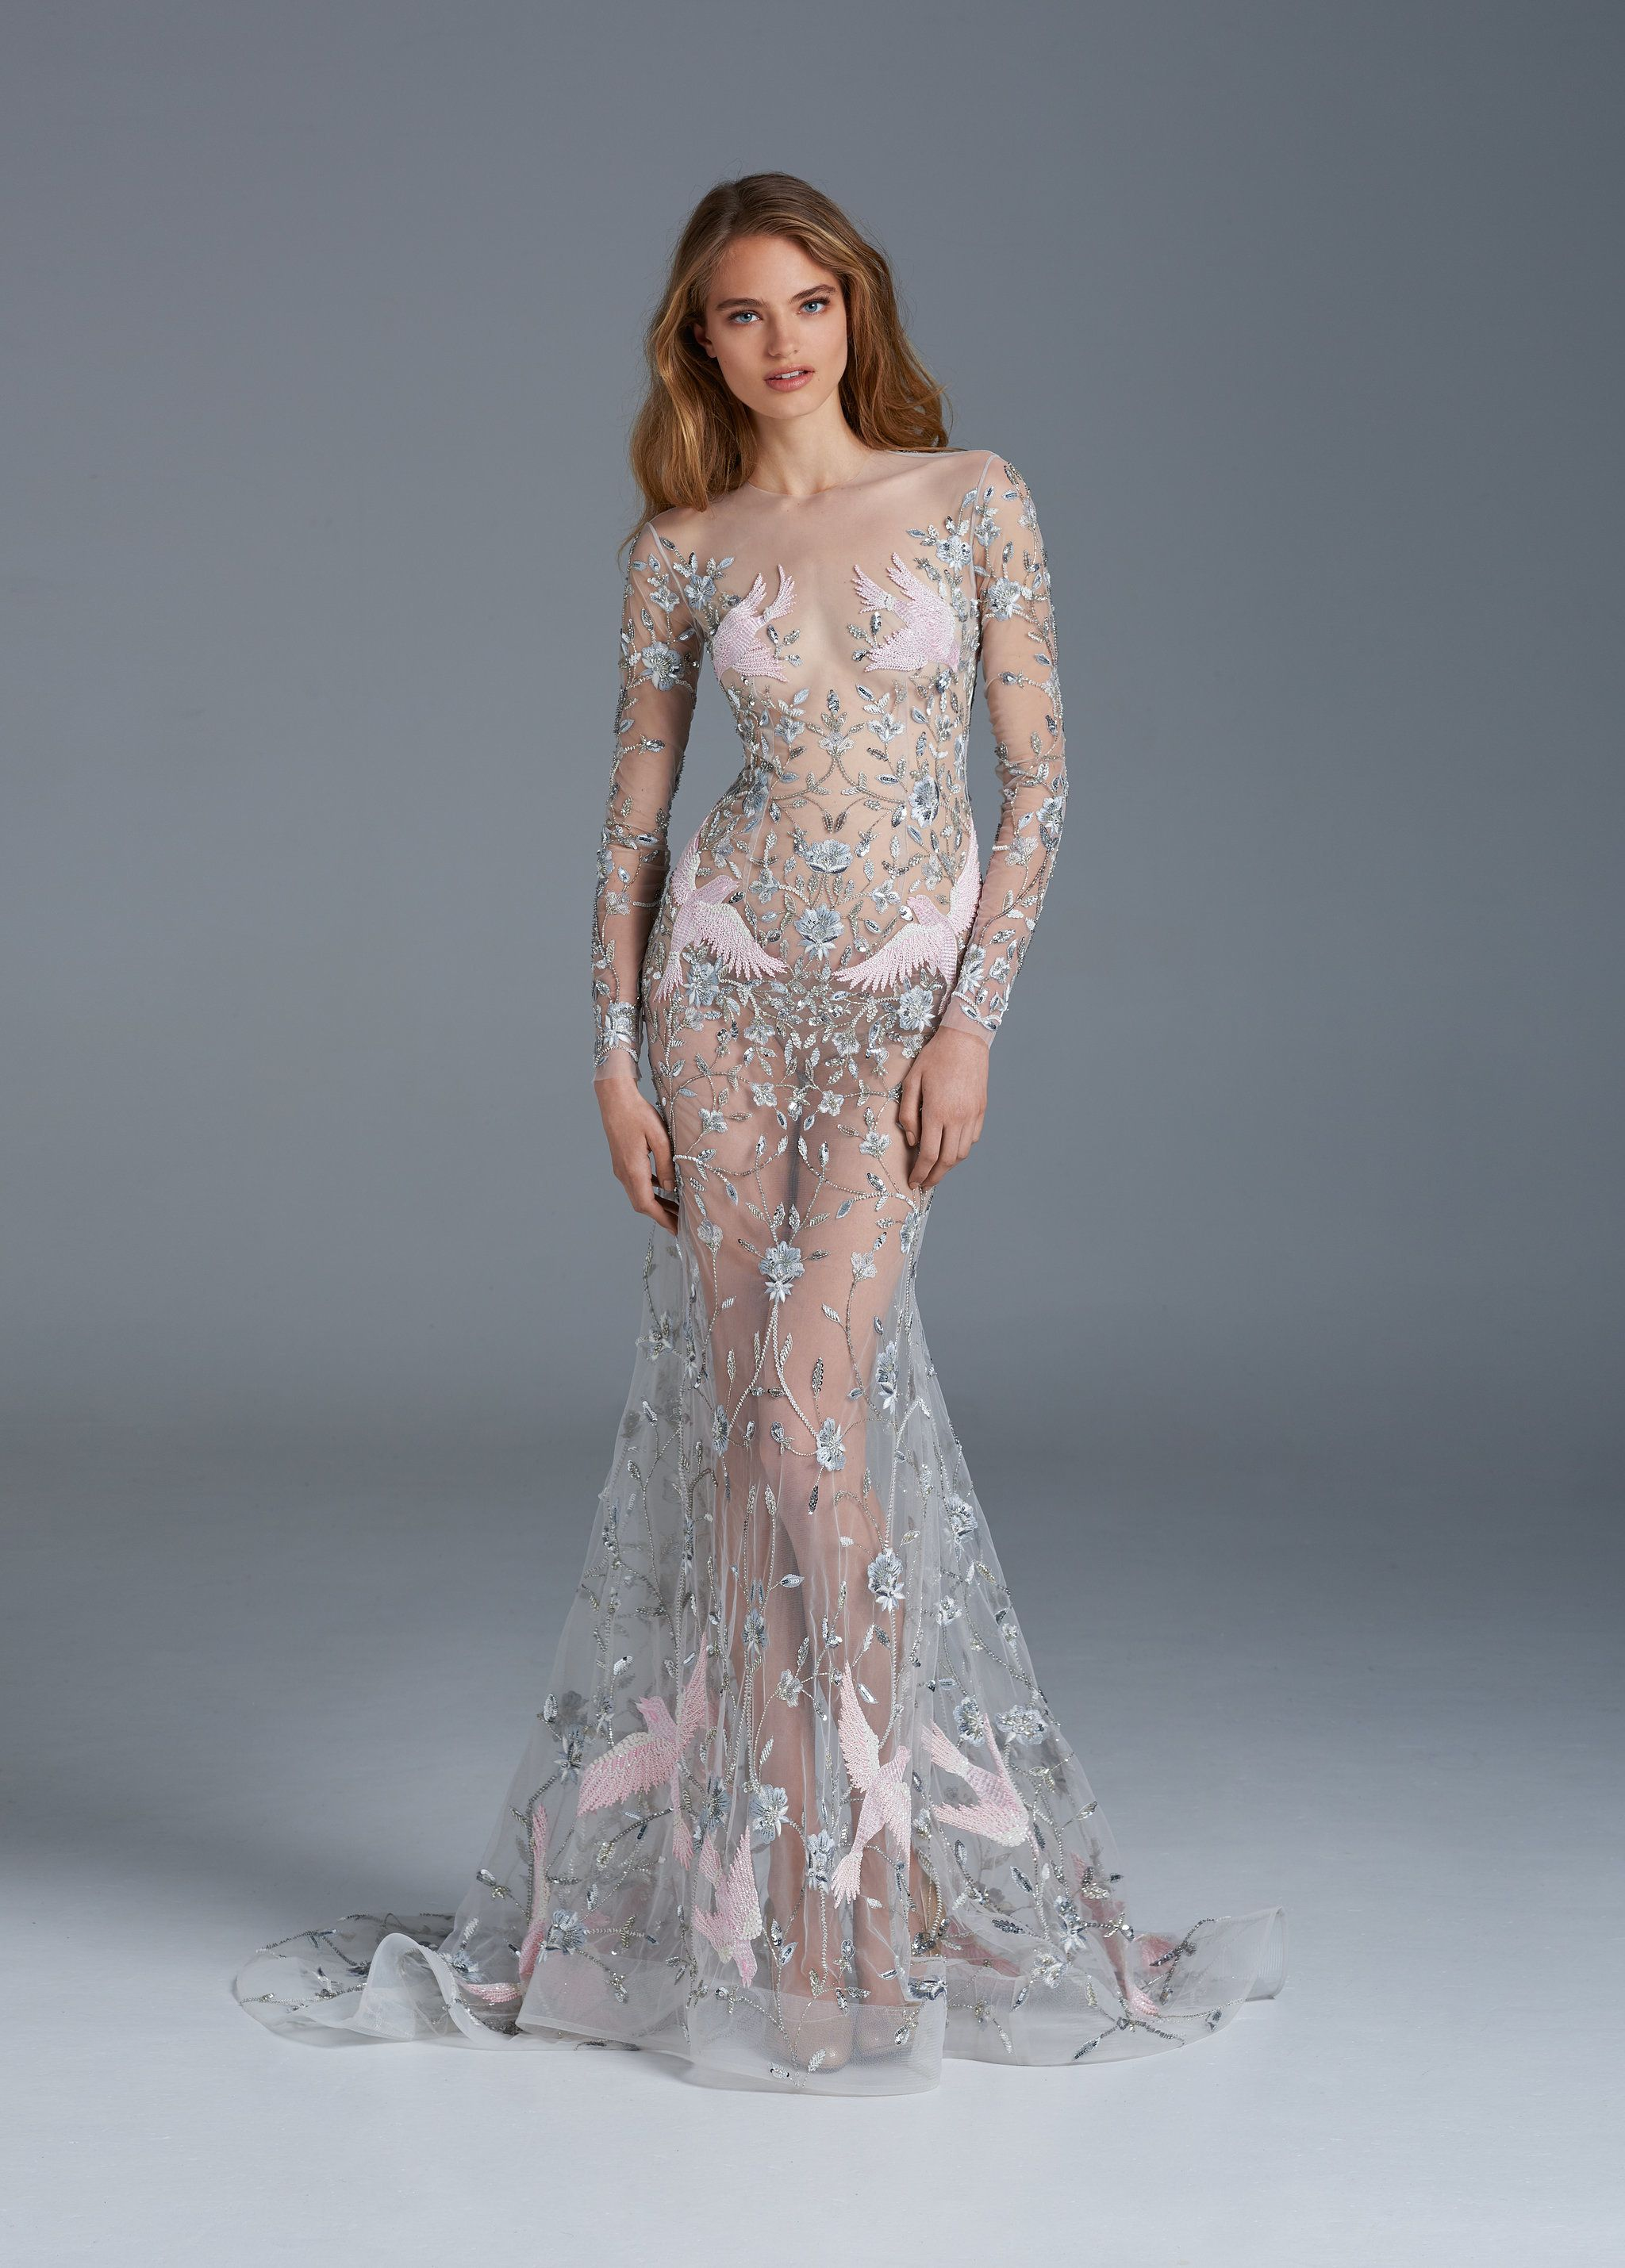 The Internet Is Freaking Out Over These Breathtaking Naked Dresses ...